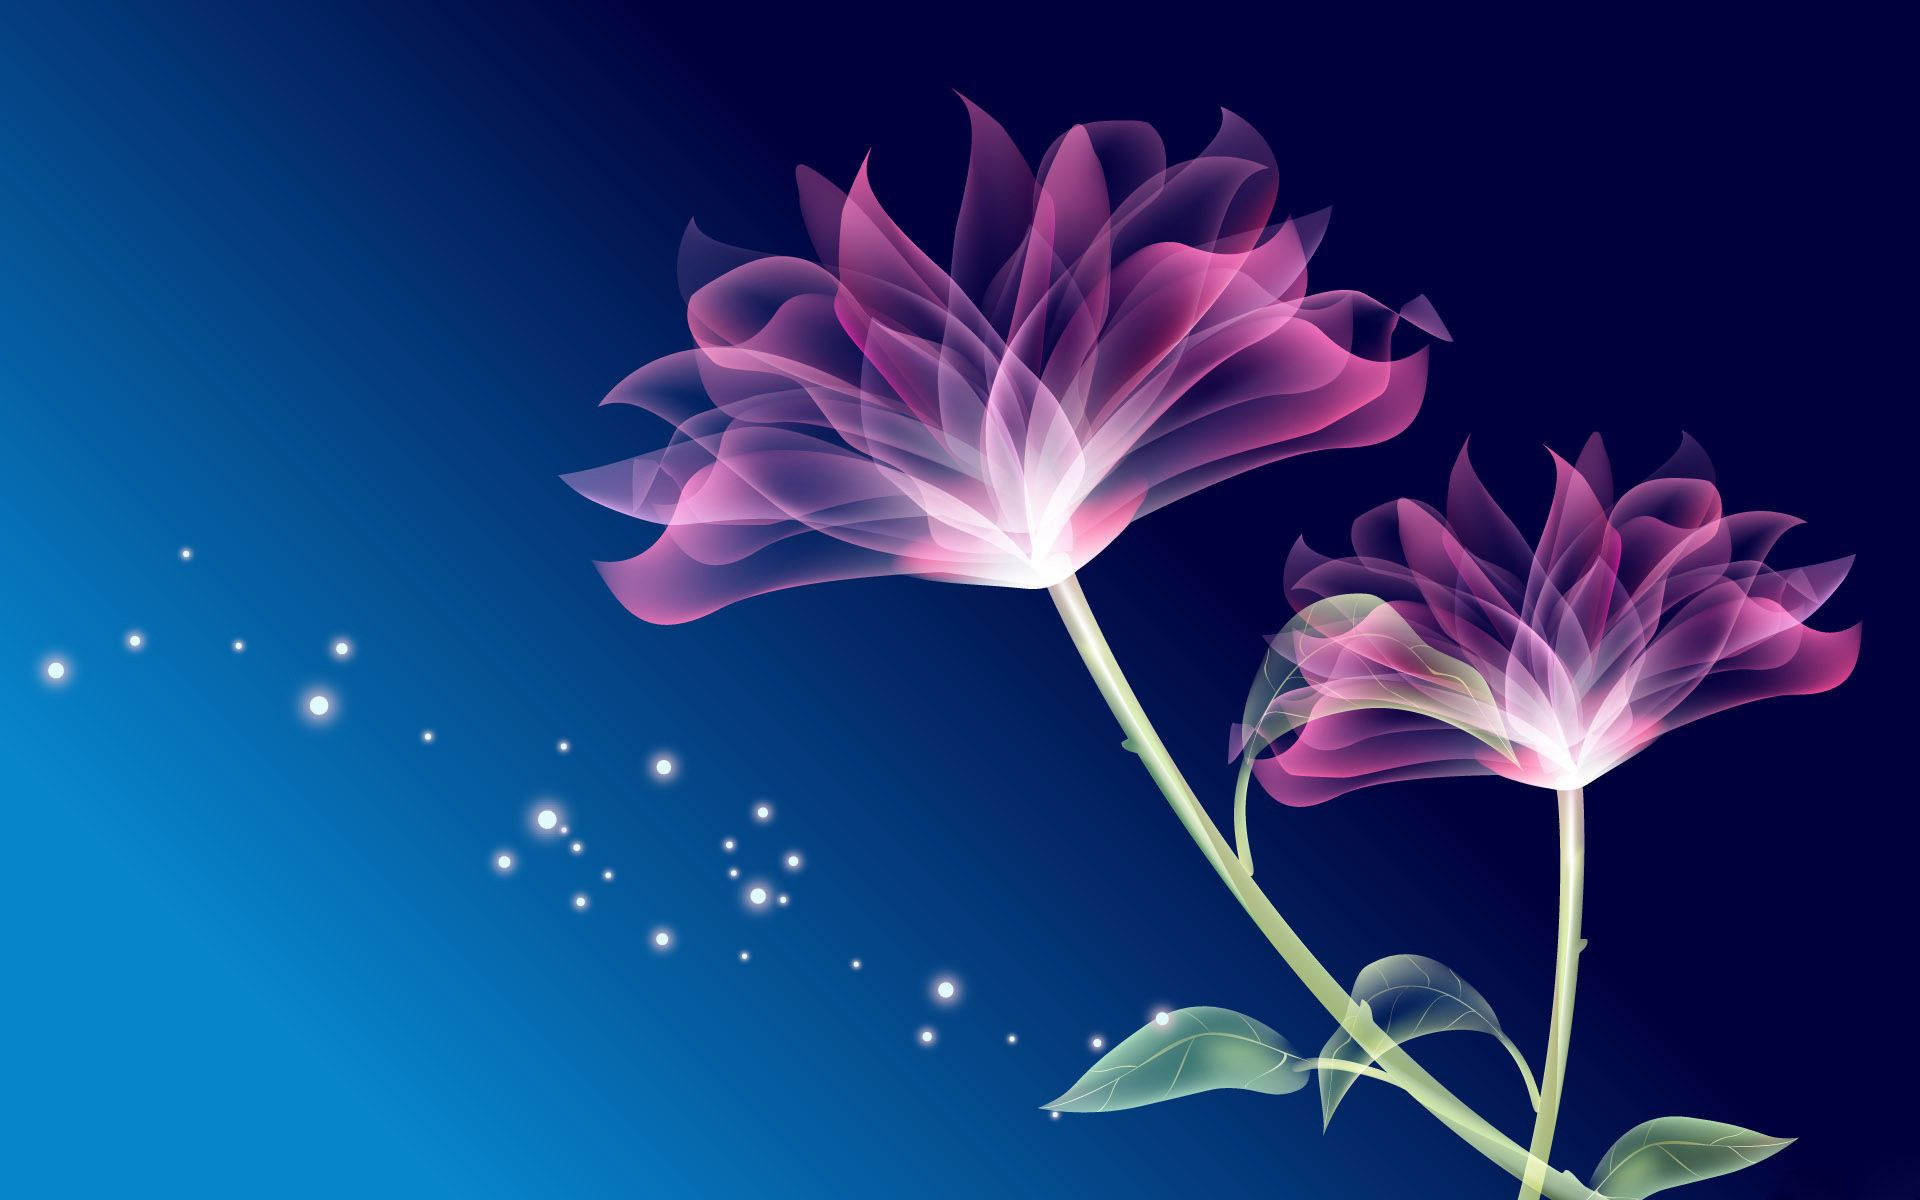 Neon Flowers Wallpapers Top Free Neon Flowers Backgrounds